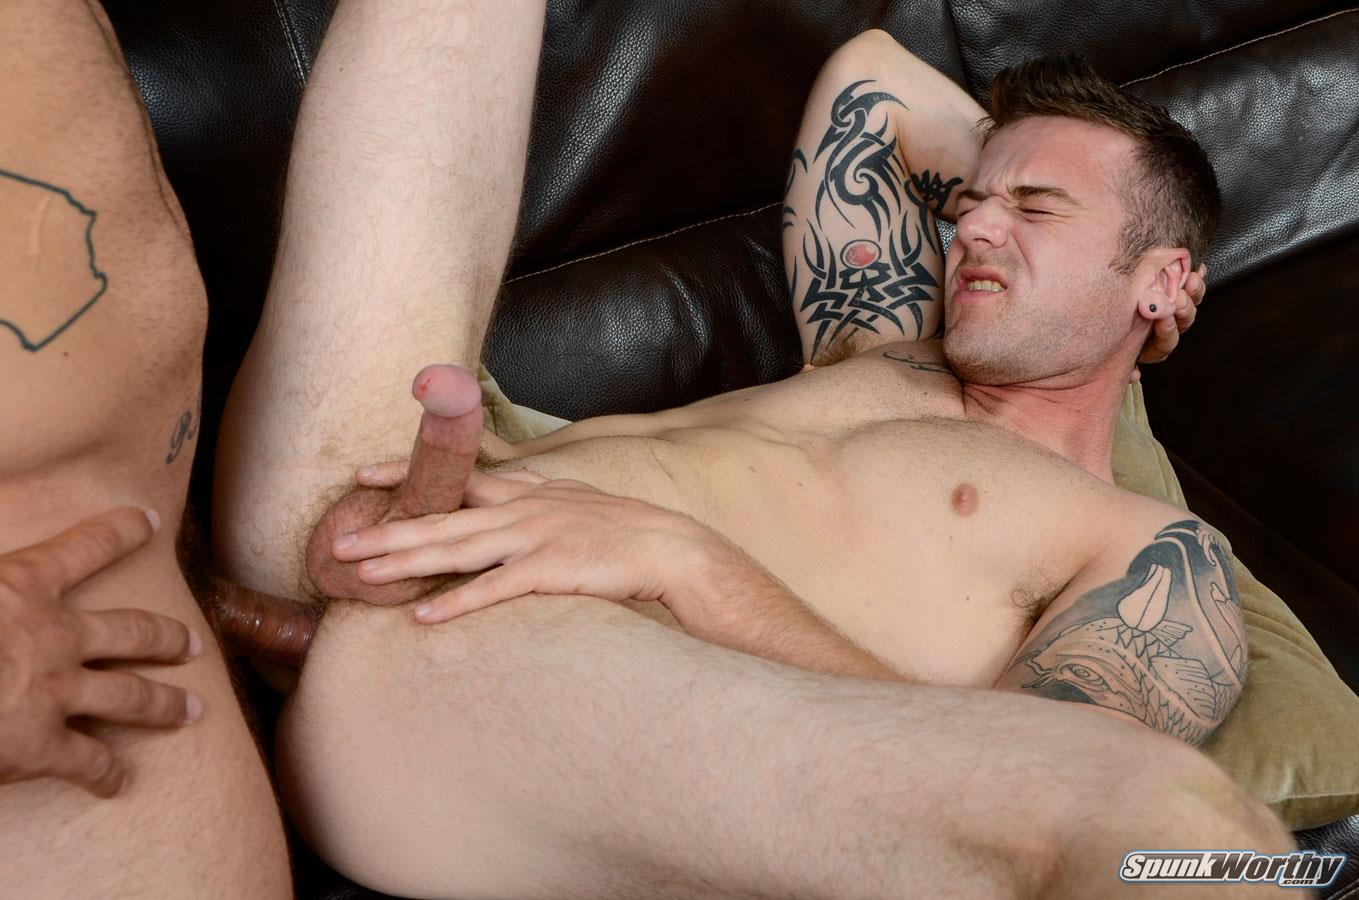 SpunkWorthy-Nicholas-and-Scotty-Beefy-Muscle-Straight-Marine-Fucks-First-Man-Ass-Amateur-Gay-Porn-16 Straight Beefy Muscle Marine Fucks His First Man Ass